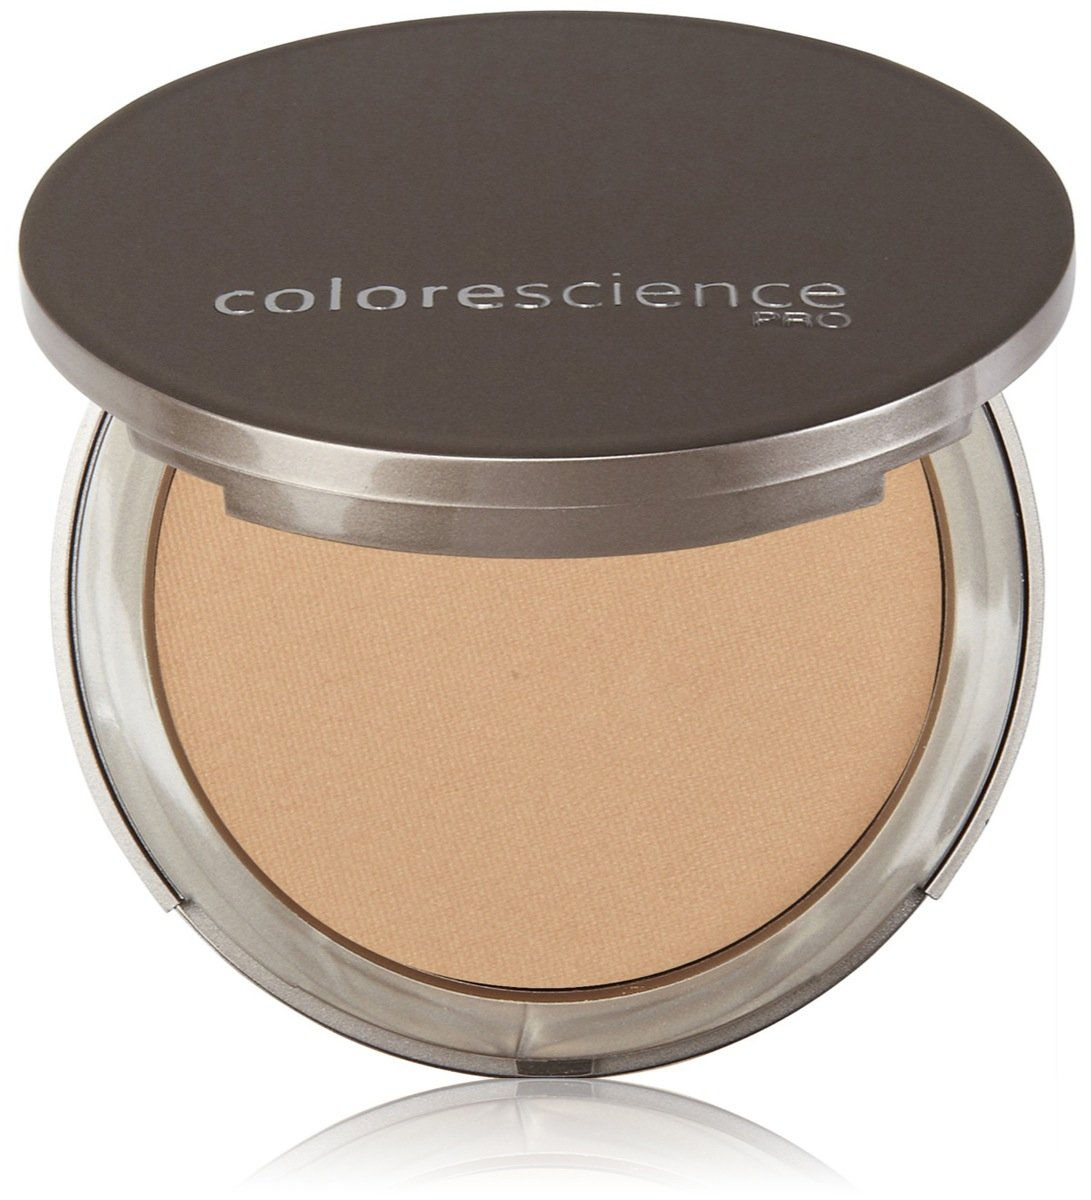 Colourscience Pressed Mineral Foundation Lid